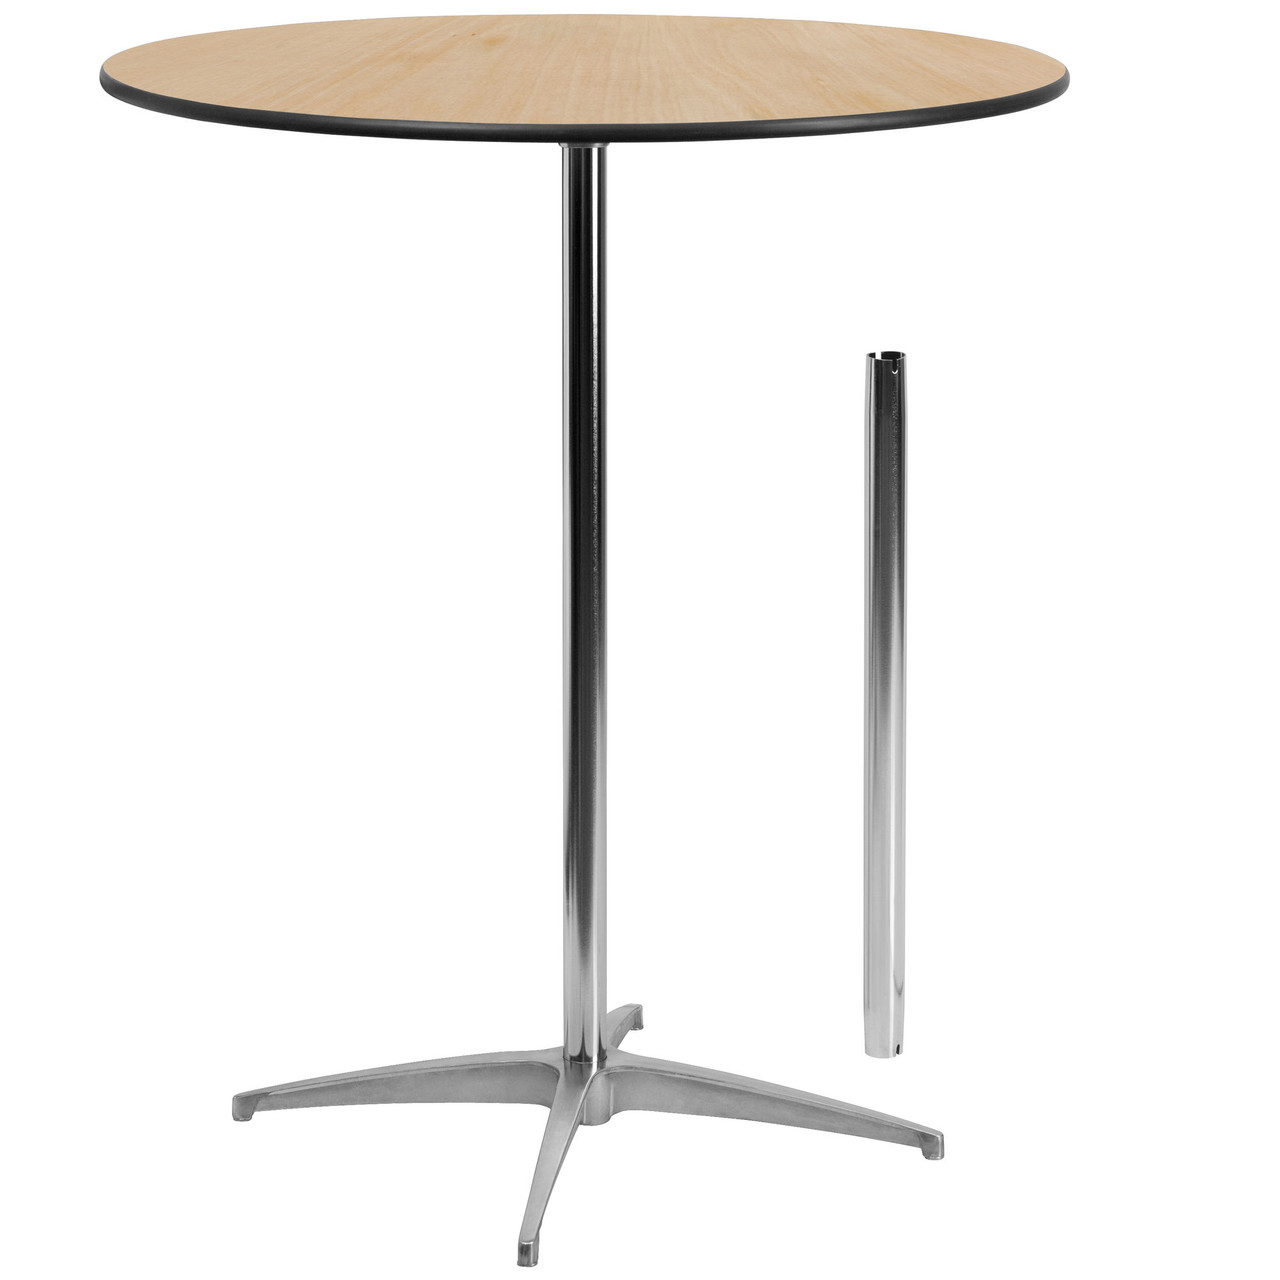 36 inch round cocktail table bfdh 36pedtblrd tdr